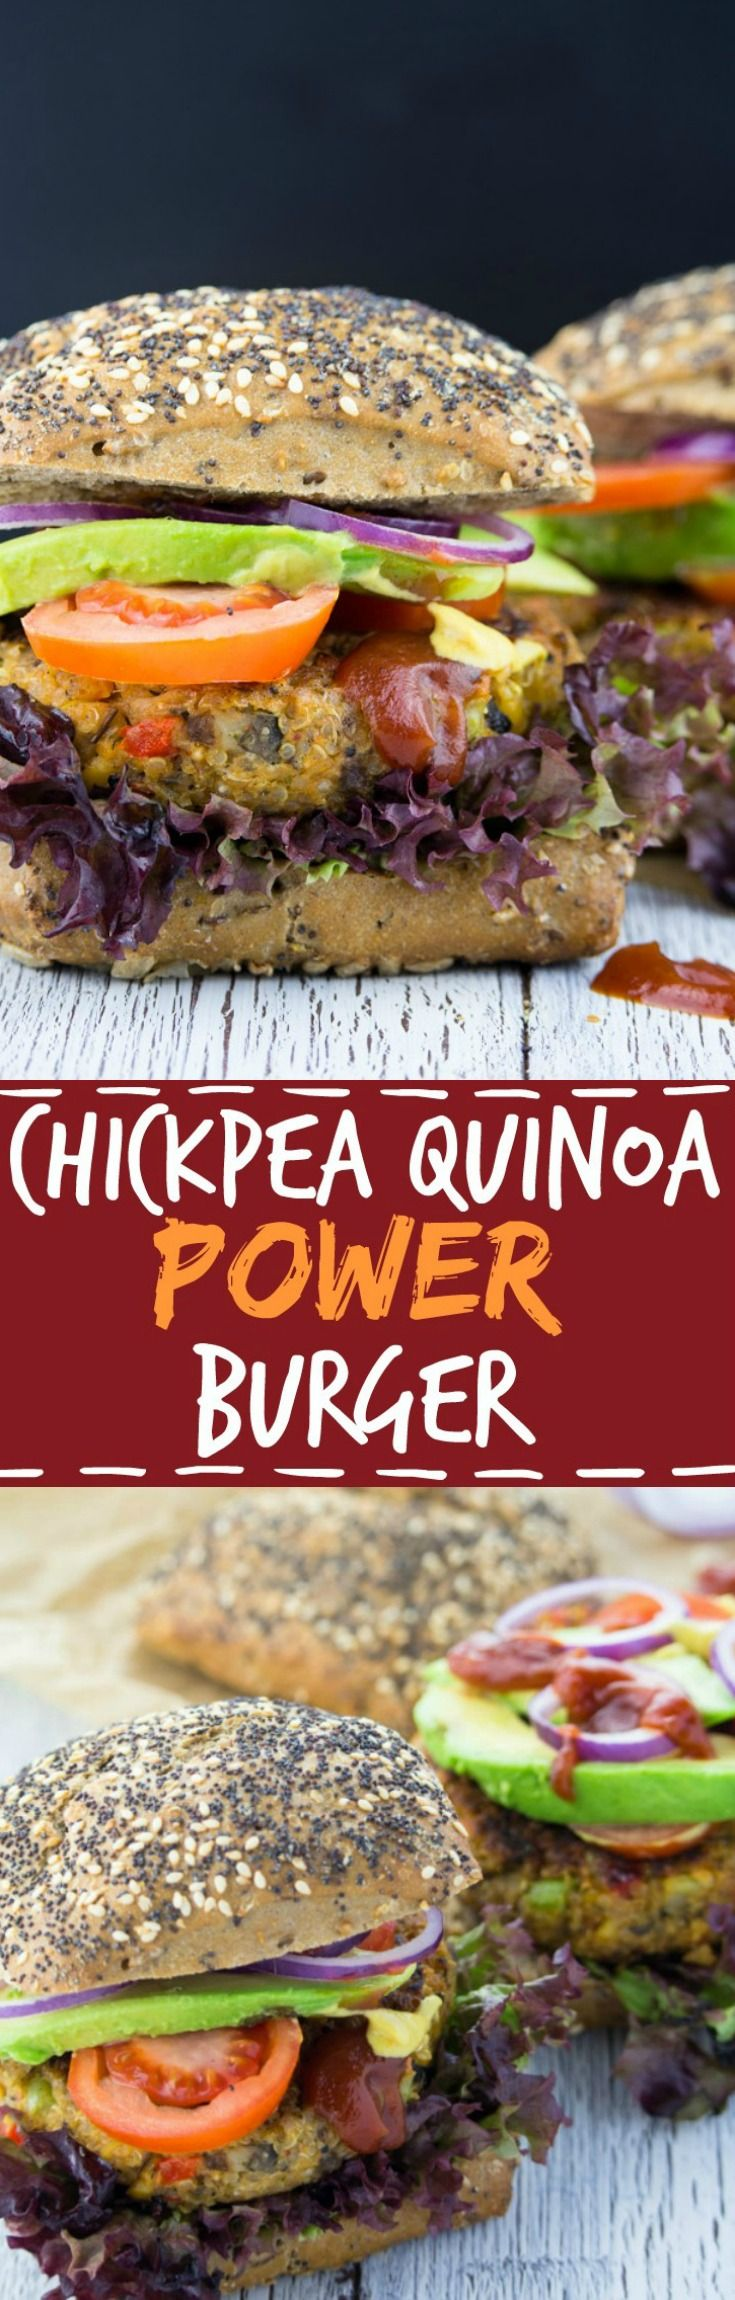 These vegan chickpea quinoa power burgers are packed with protein, veggies, and flavor! | healthy recipe ideas @xhealthyrecipex |